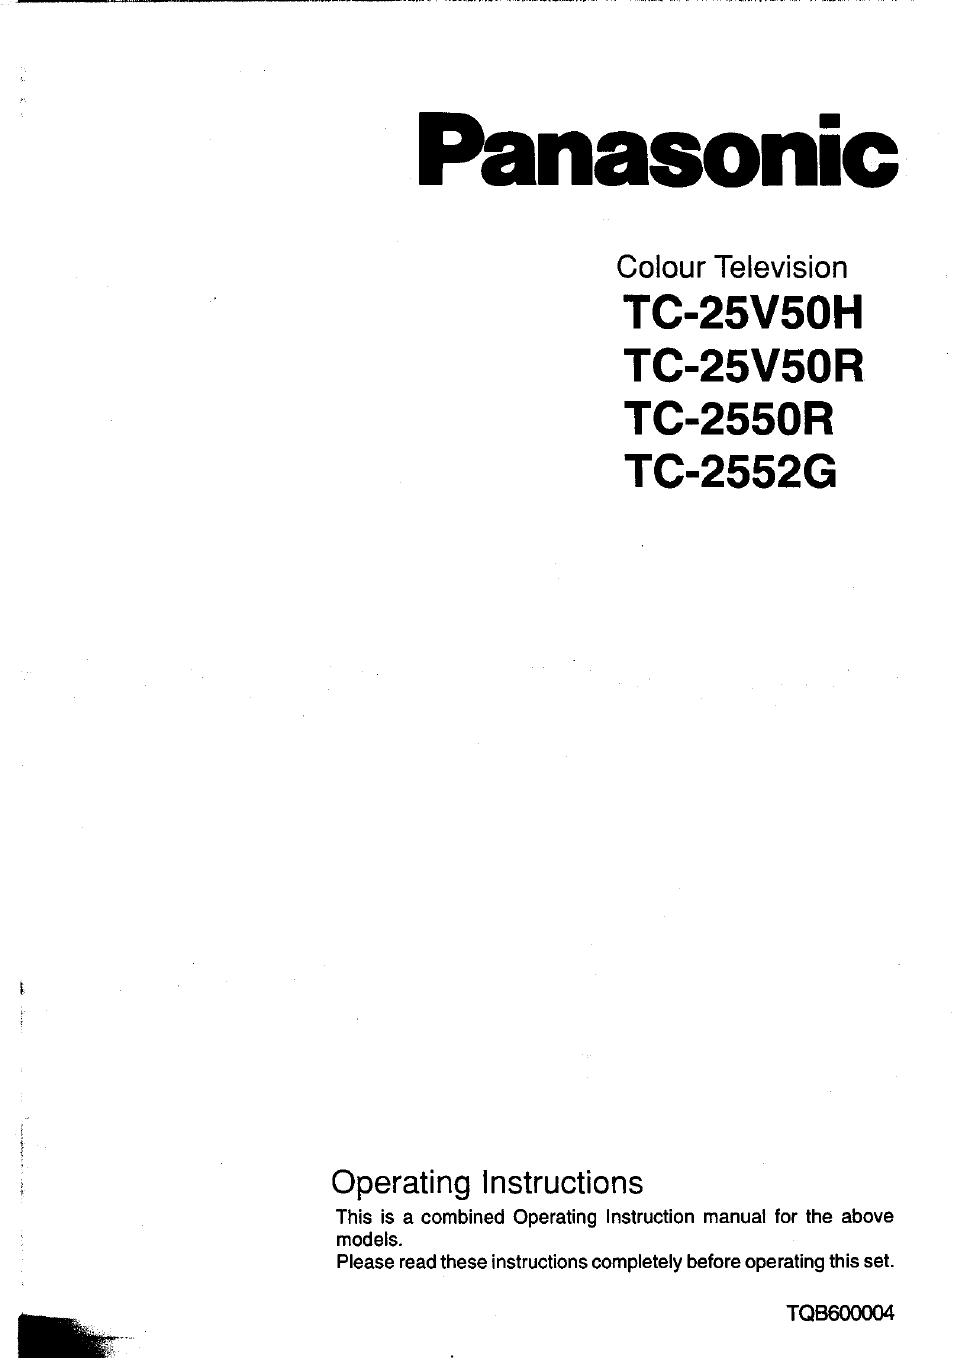 Panasonic TC-25V50H EN User Manual | 28 pages | Also for: TC-2550R